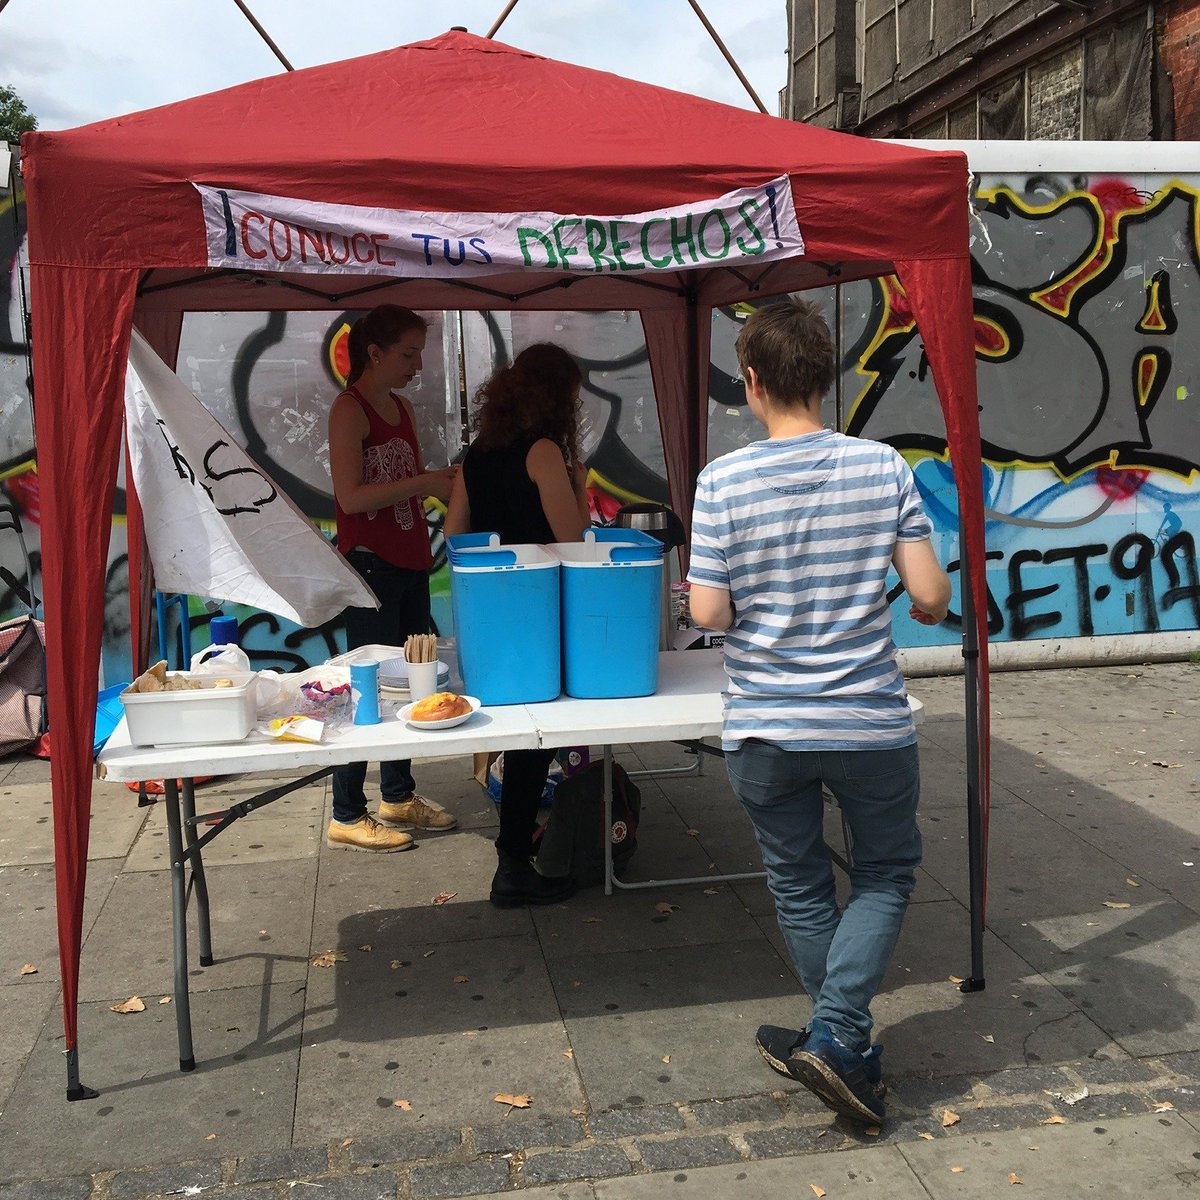 🥕Want to get involved in Food Not Bombs?🥕 We always need ppl to cook, share food & find/collect food donations! We share food every 1st & 3rd Sat of the month outside 7 Sisters Station + for meetings/events. Get in touch if you can help out ✨